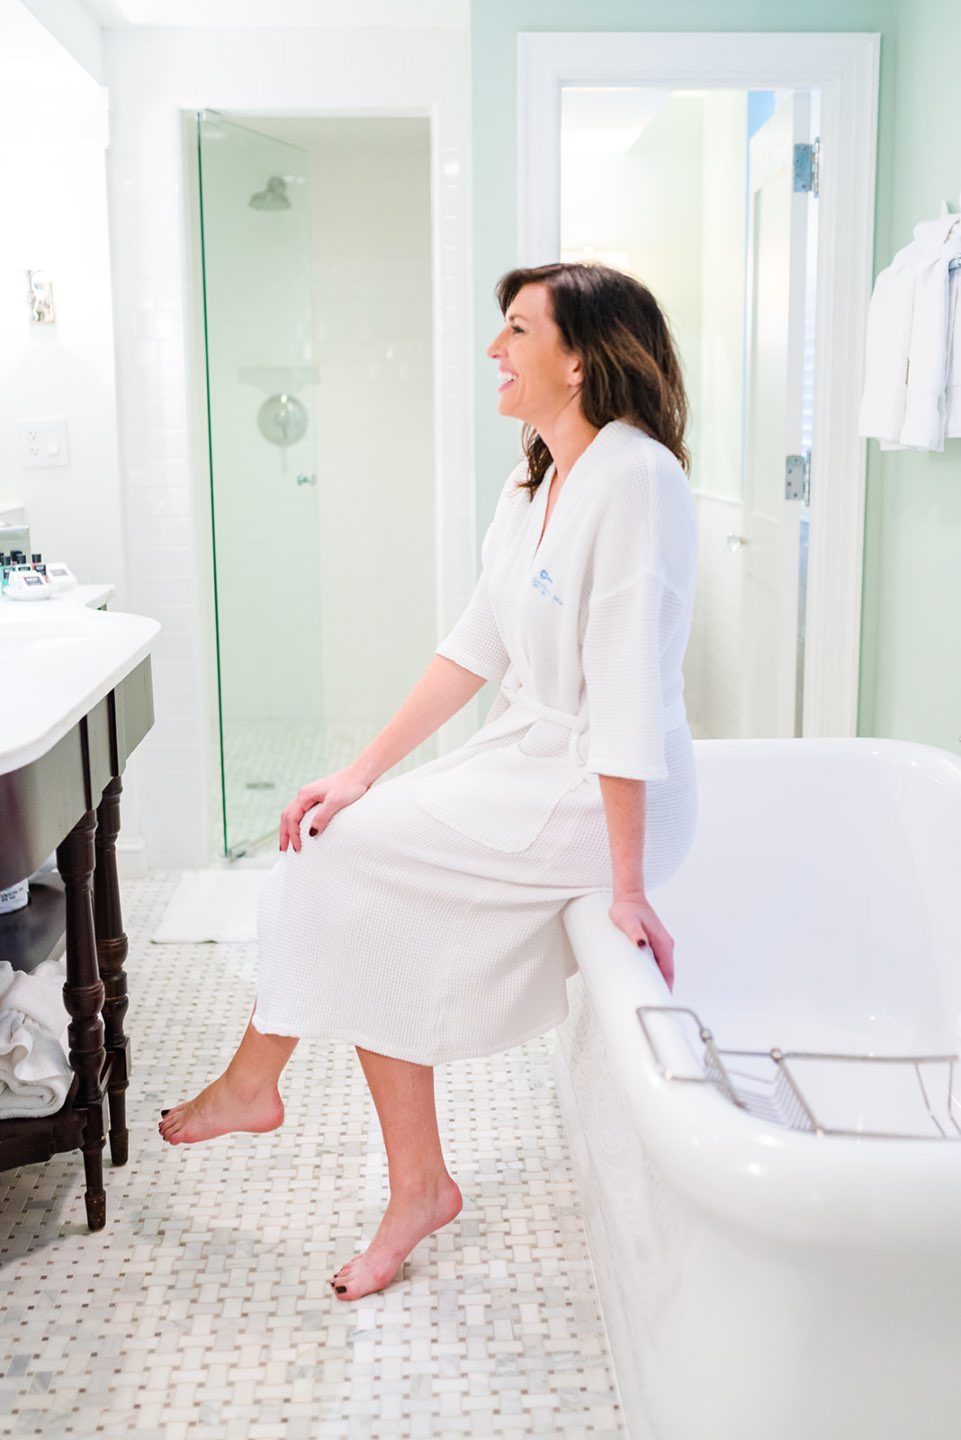 How to Set Healthy Boundaries with Friends: 8 Essential Tips - I'm Fixin' To - @mbg0112 | How to Set Healthy Boundaries with Friends: 8 Essential Tips by popular NC life and style blog, I'm Fixin' To: image of a woman sitting on the edge of a tub.